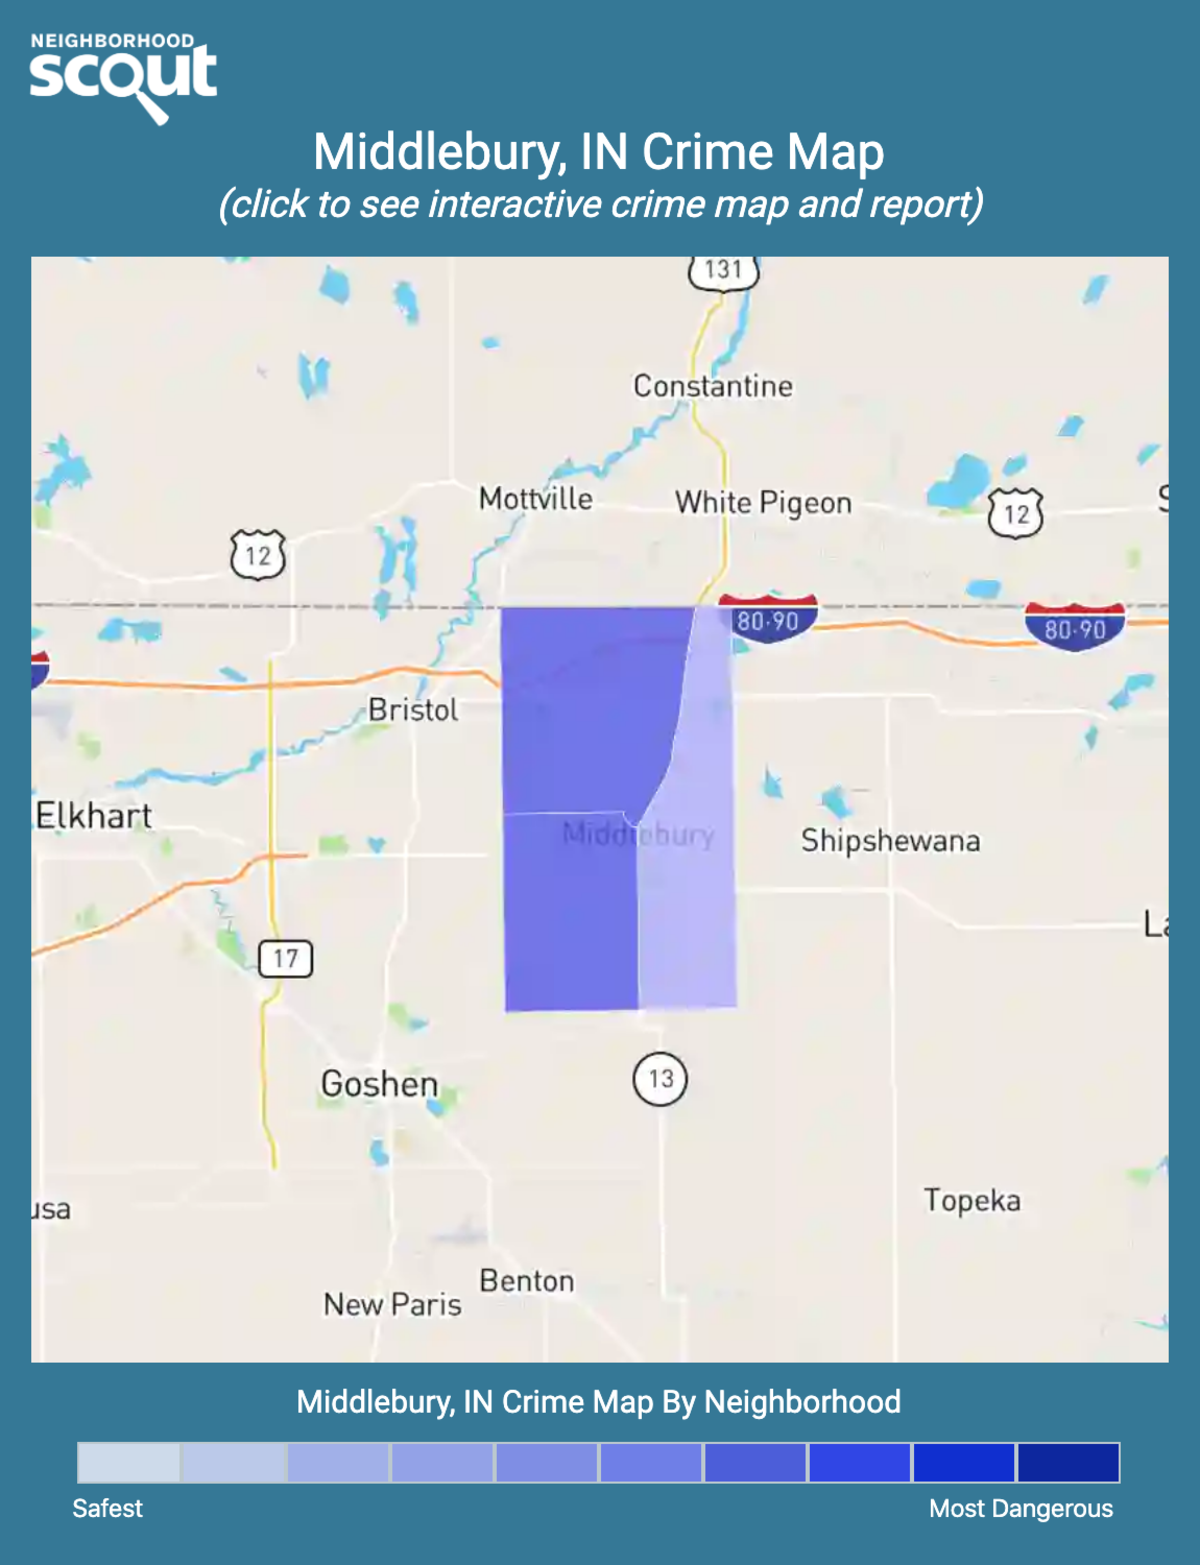 Middlebury, Indiana crime map